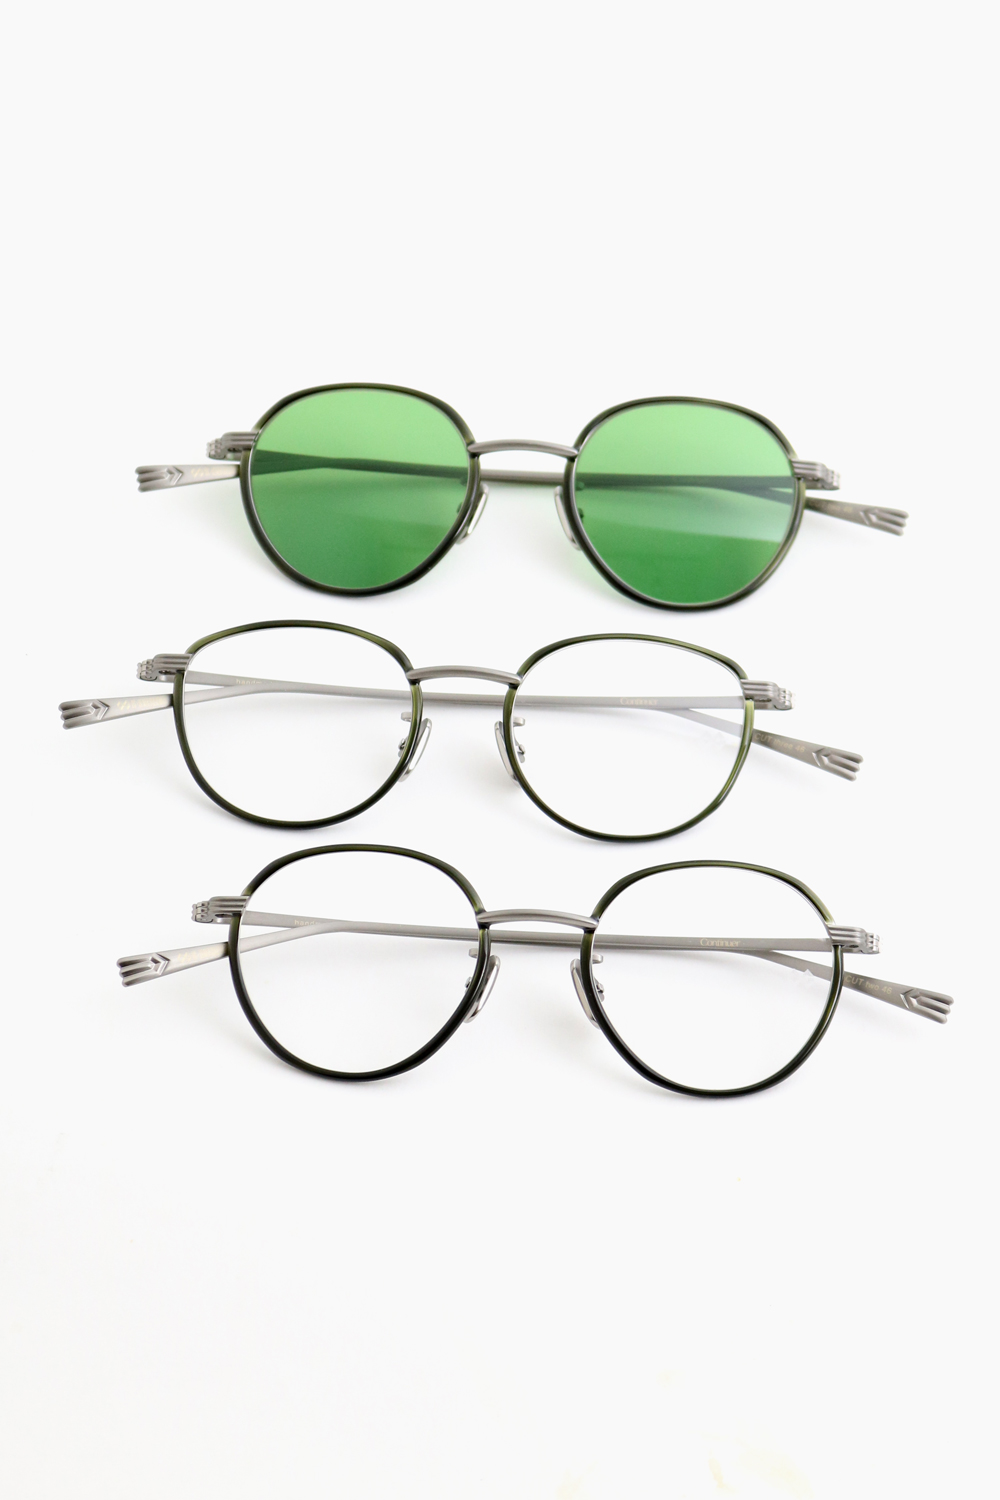 OG×OLIVER GOLDSMITH for Continuer